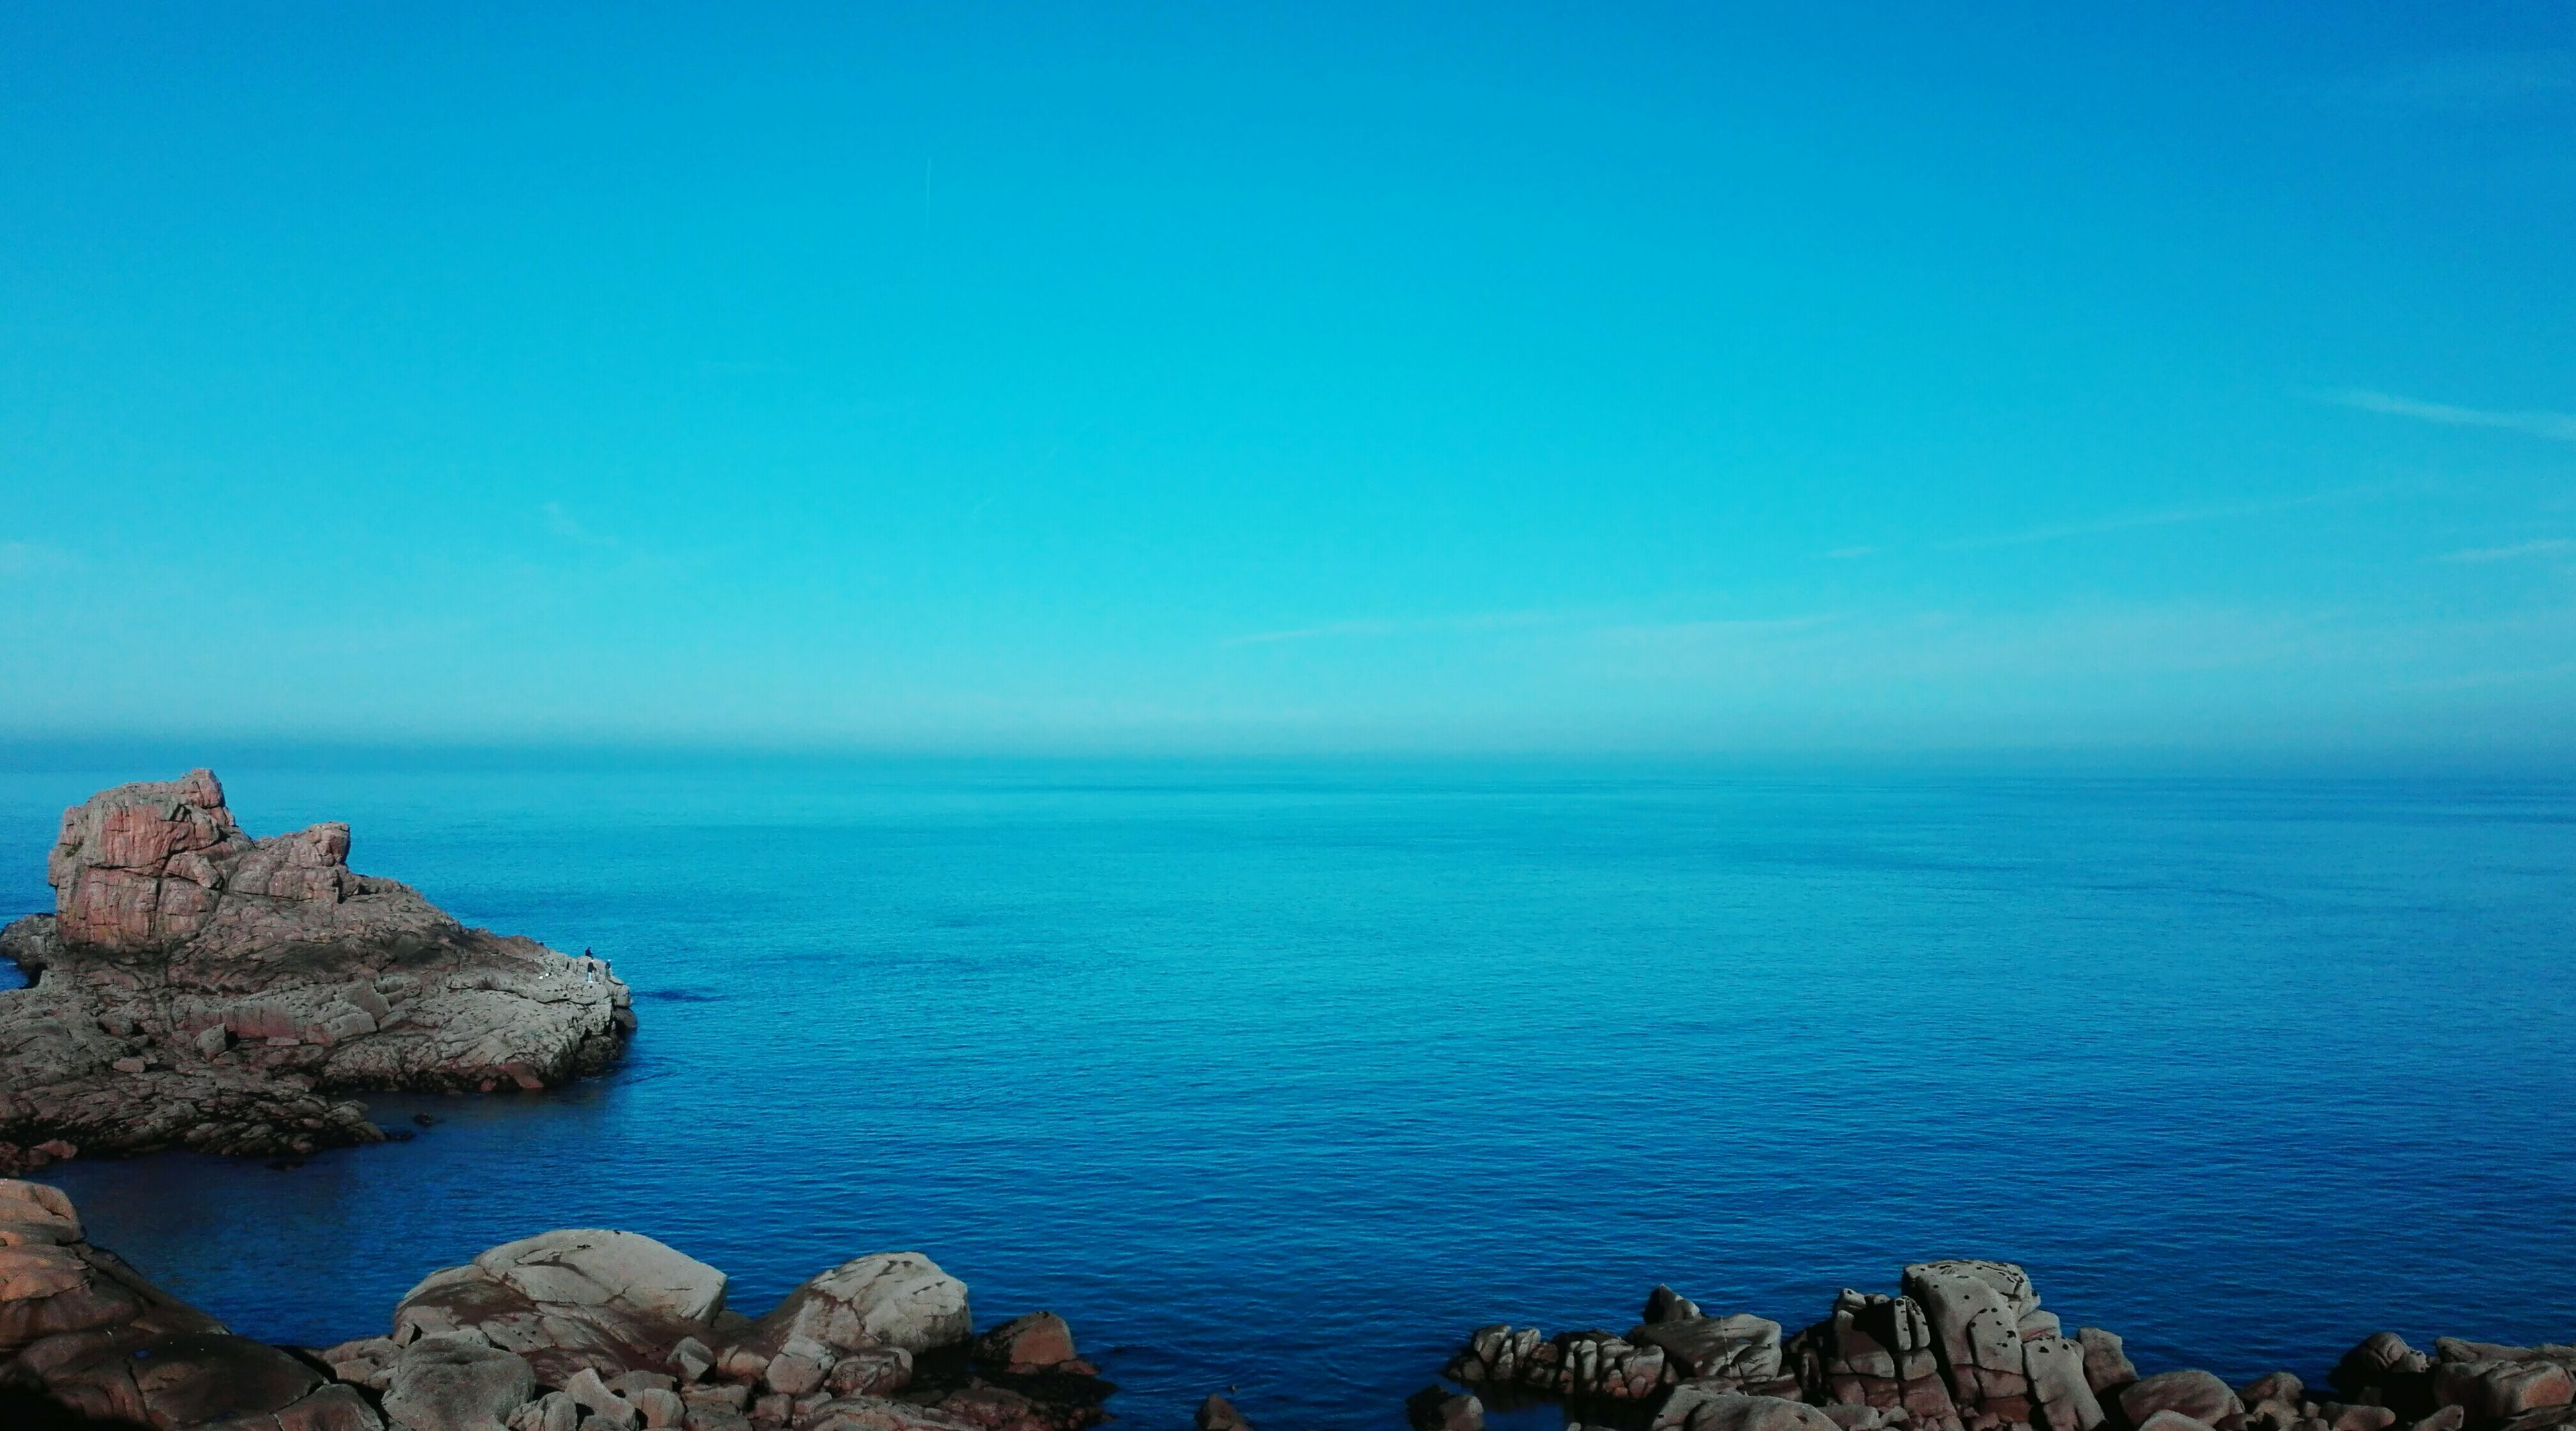 sea, rock - object, water, horizon over water, nature, tranquil scene, beauty in nature, scenics, blue, tranquility, outdoors, day, no people, sky, clear sky, pebble beach